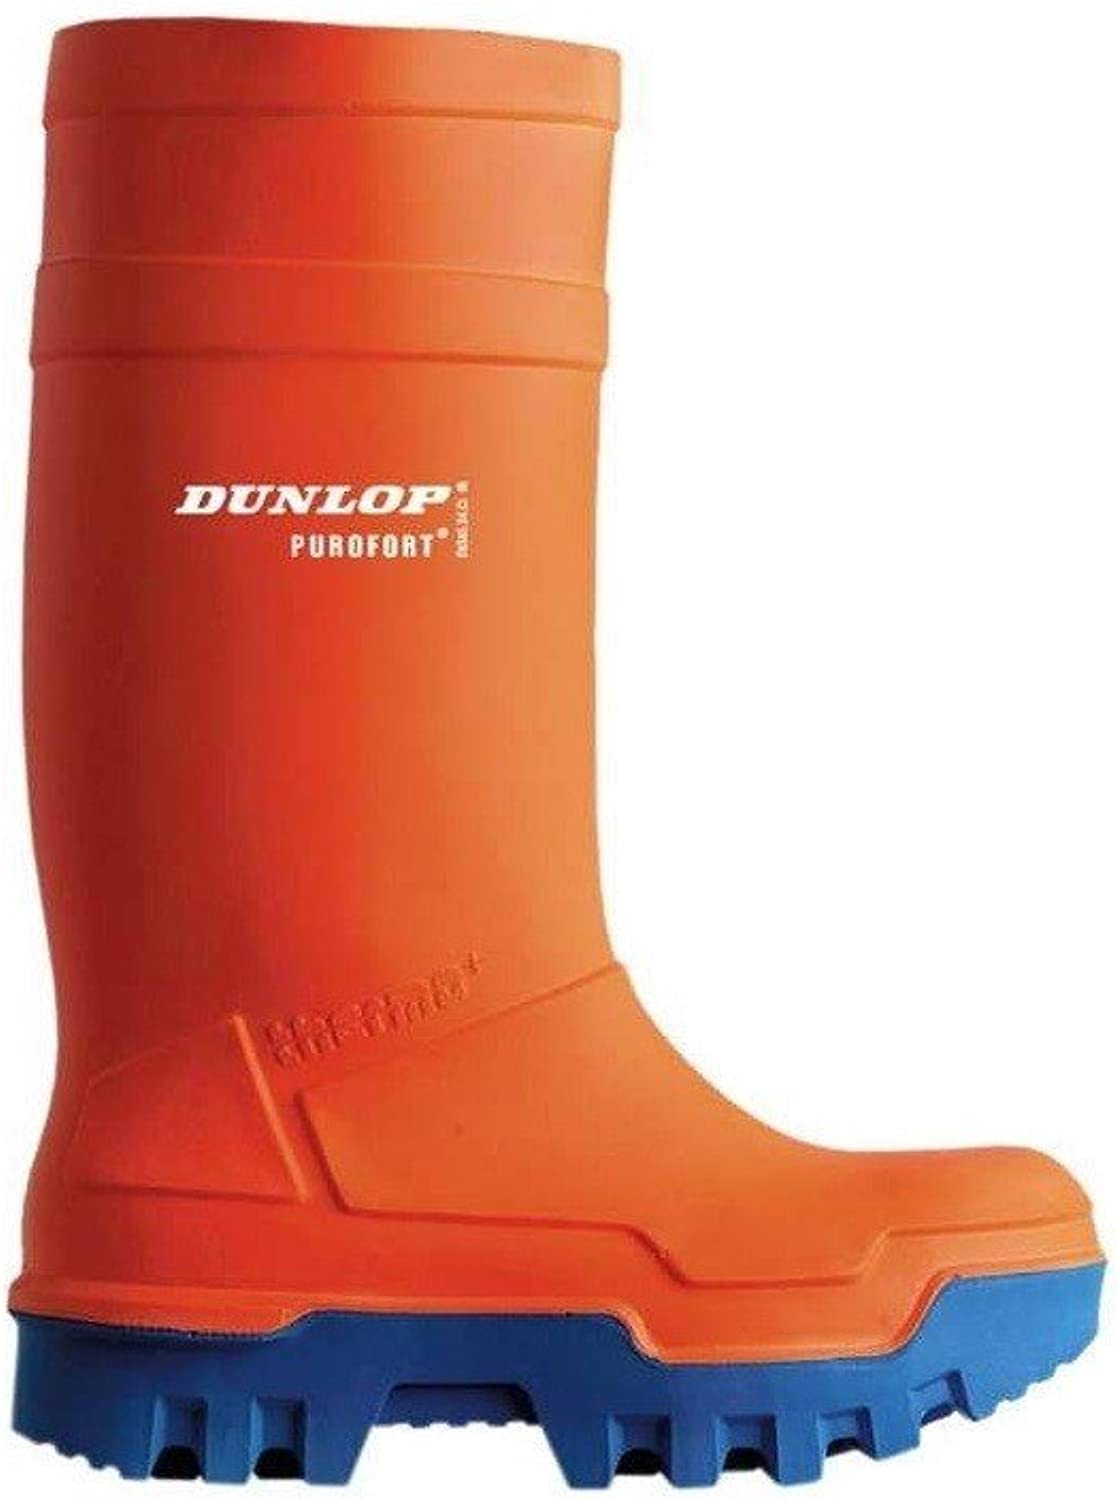 Dunlop Mens C662343 Purofort Thermo + Full Safety Wellington